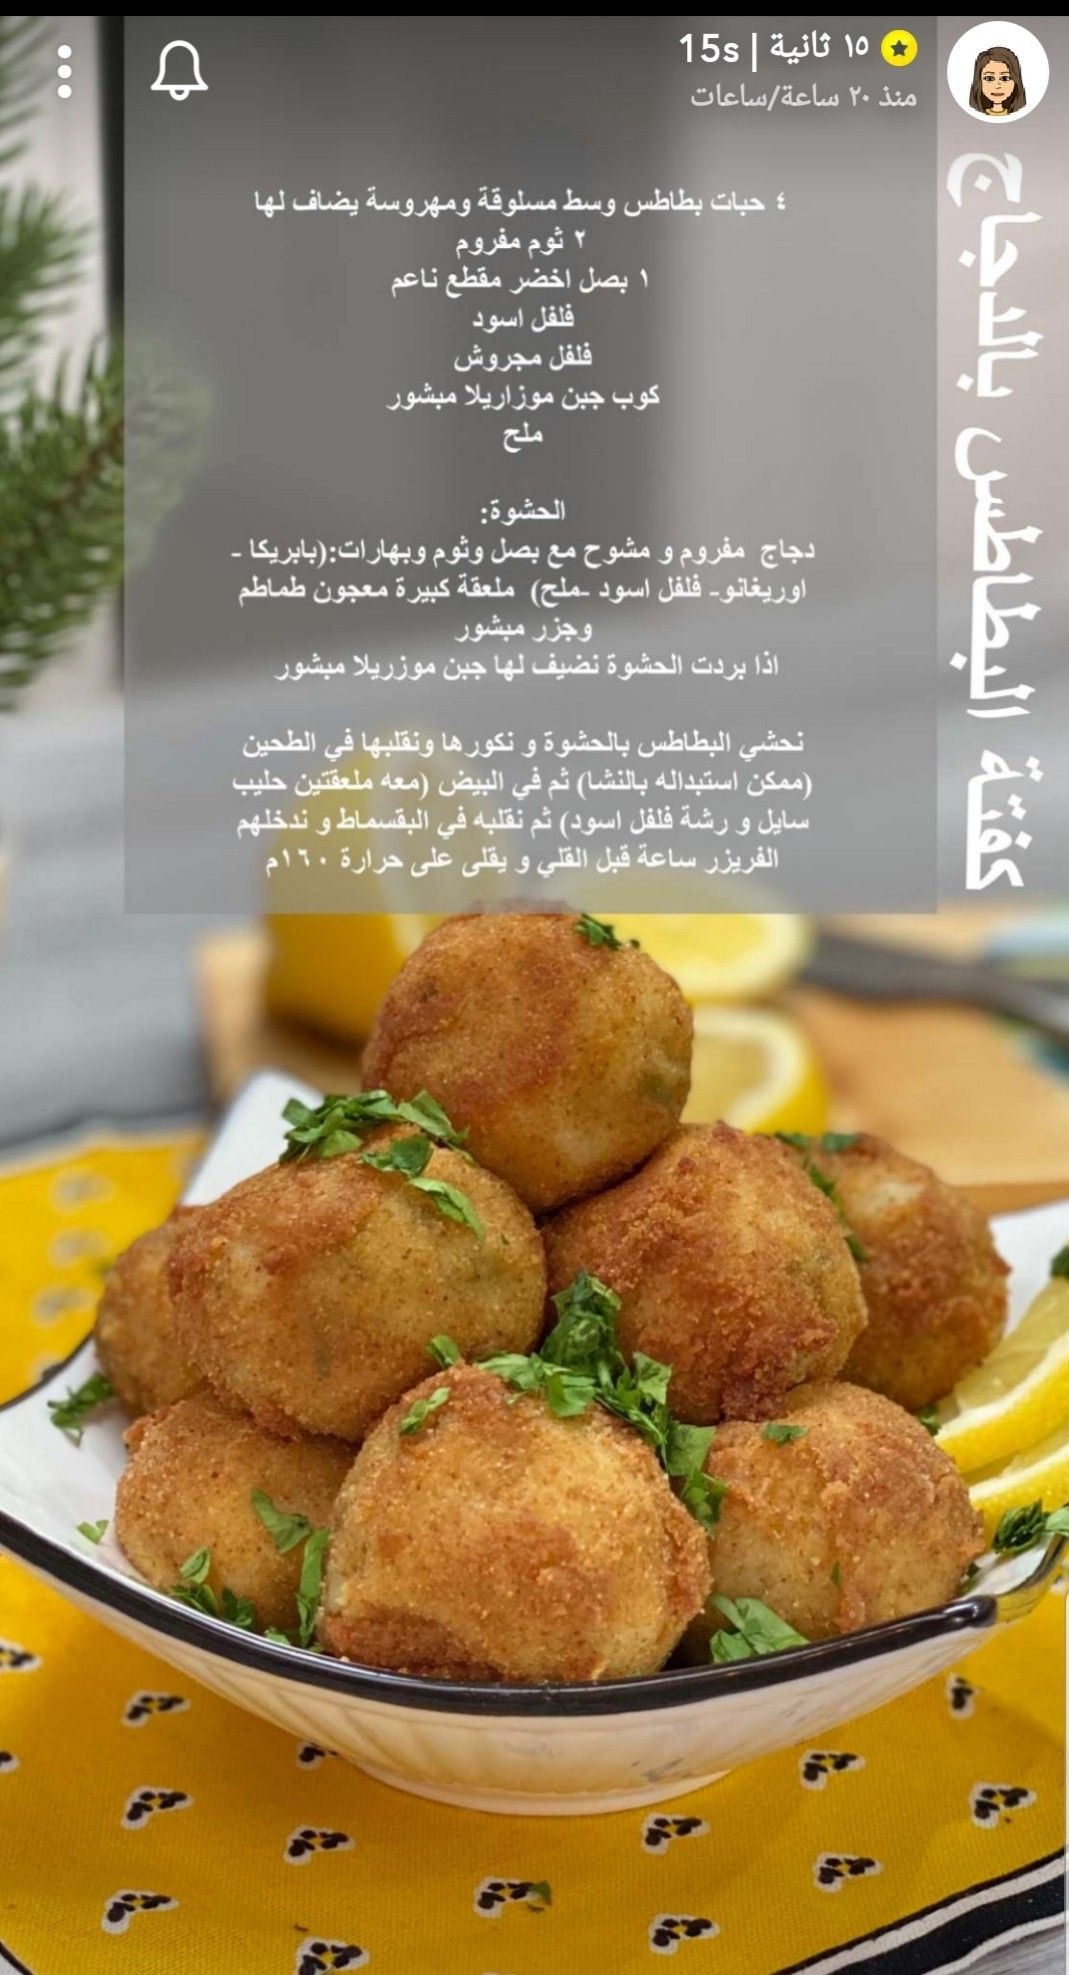 Pin By Hnoreen On Food طبخ Health Facts Food Food Presentation Cooking